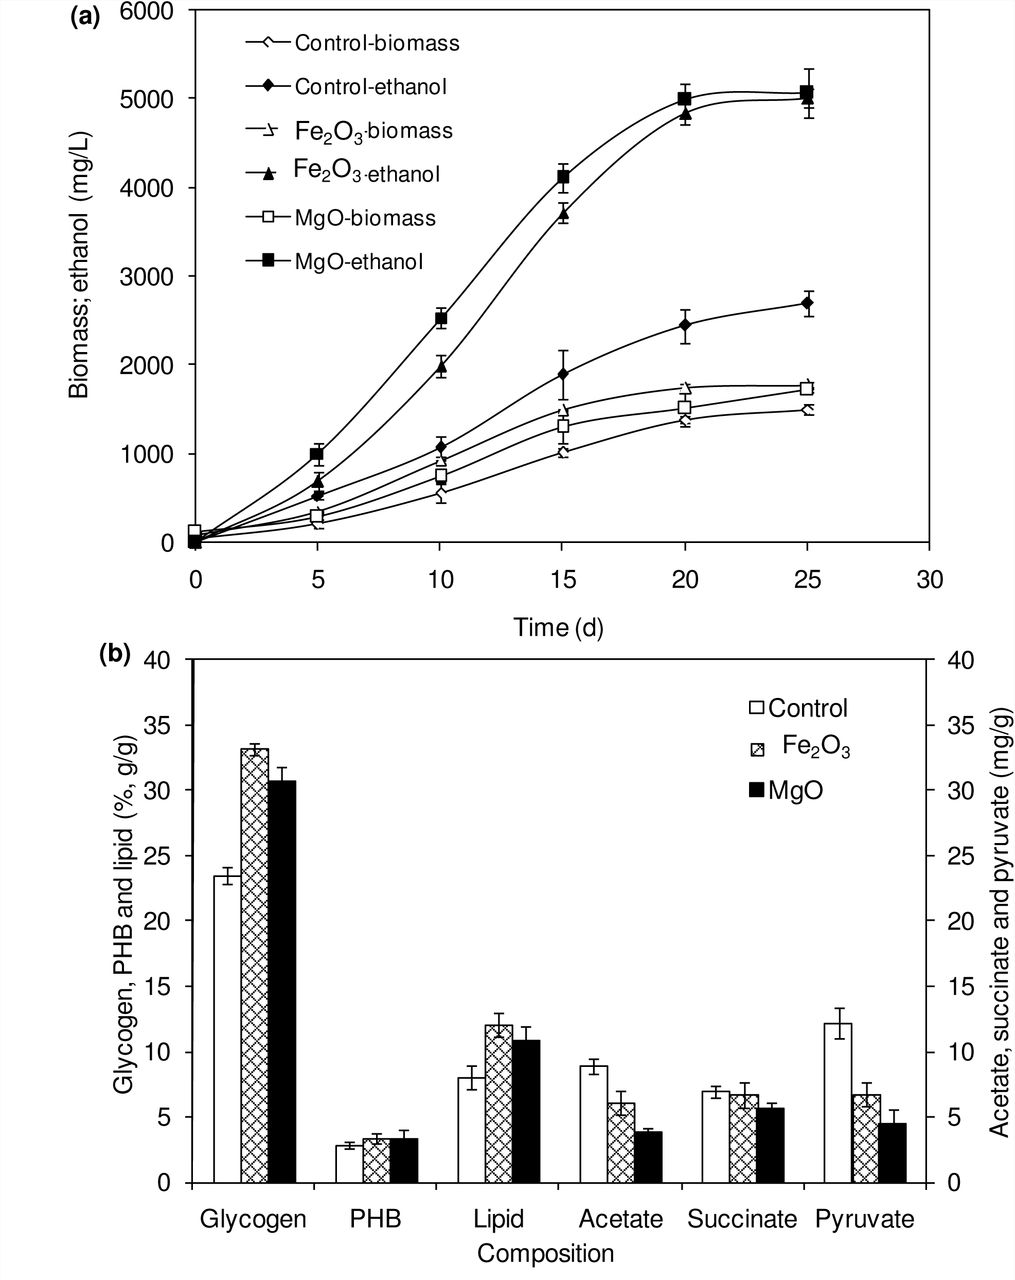 Effect of incubation time on ethanol and biomass concentration (a) and composition of intracellular products of Synechocystis (conditions: Fe 2 O 3 : 20 µM; MgO: 200 µM and NADP: 150 µM; light: 100 µE/m 2 /s).